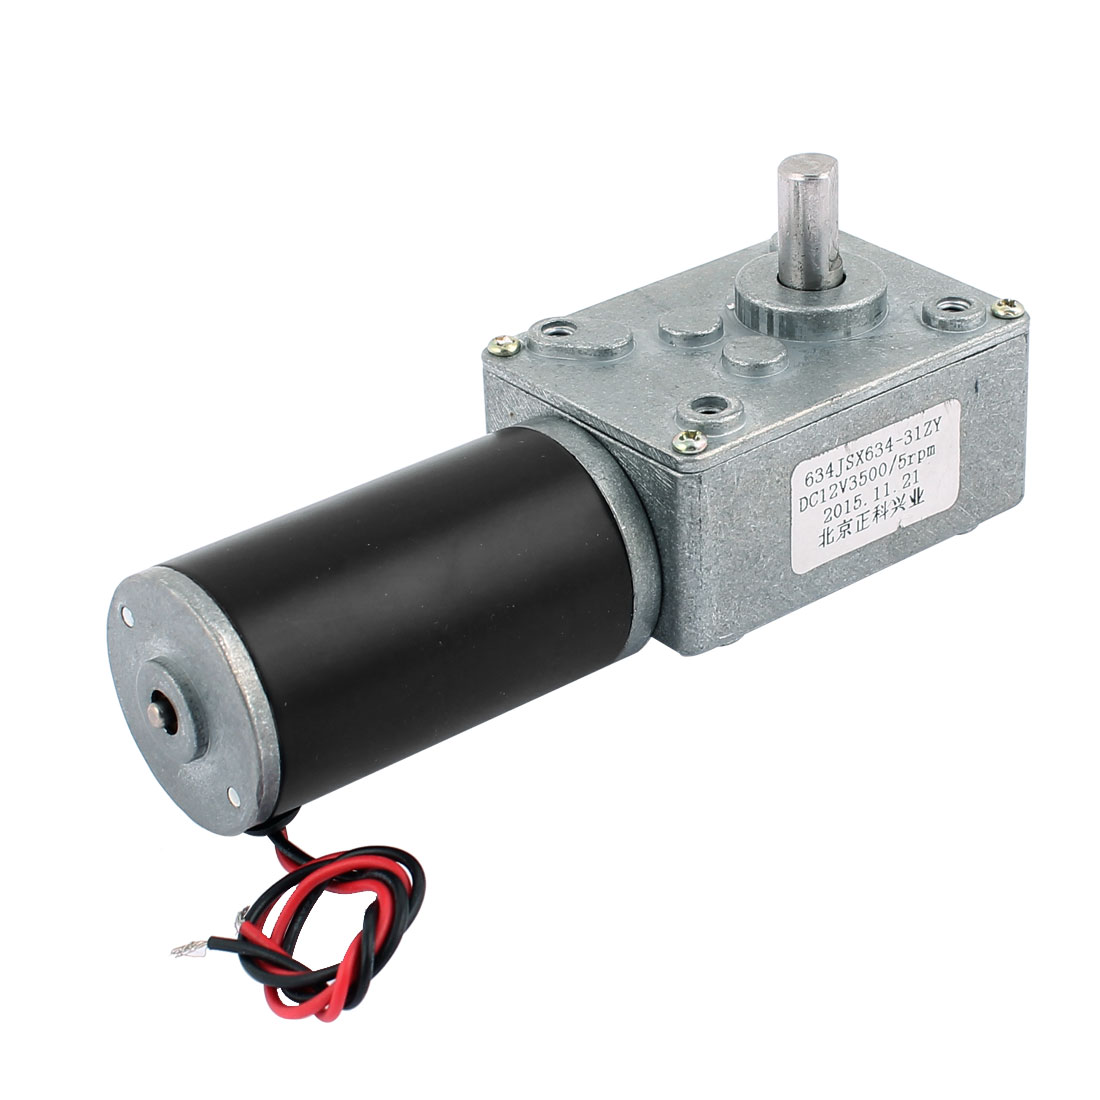 DC 12V 5RPM 8mmx14mm D-Shape Shaft Electric Power Turbo Worm Geared Motor